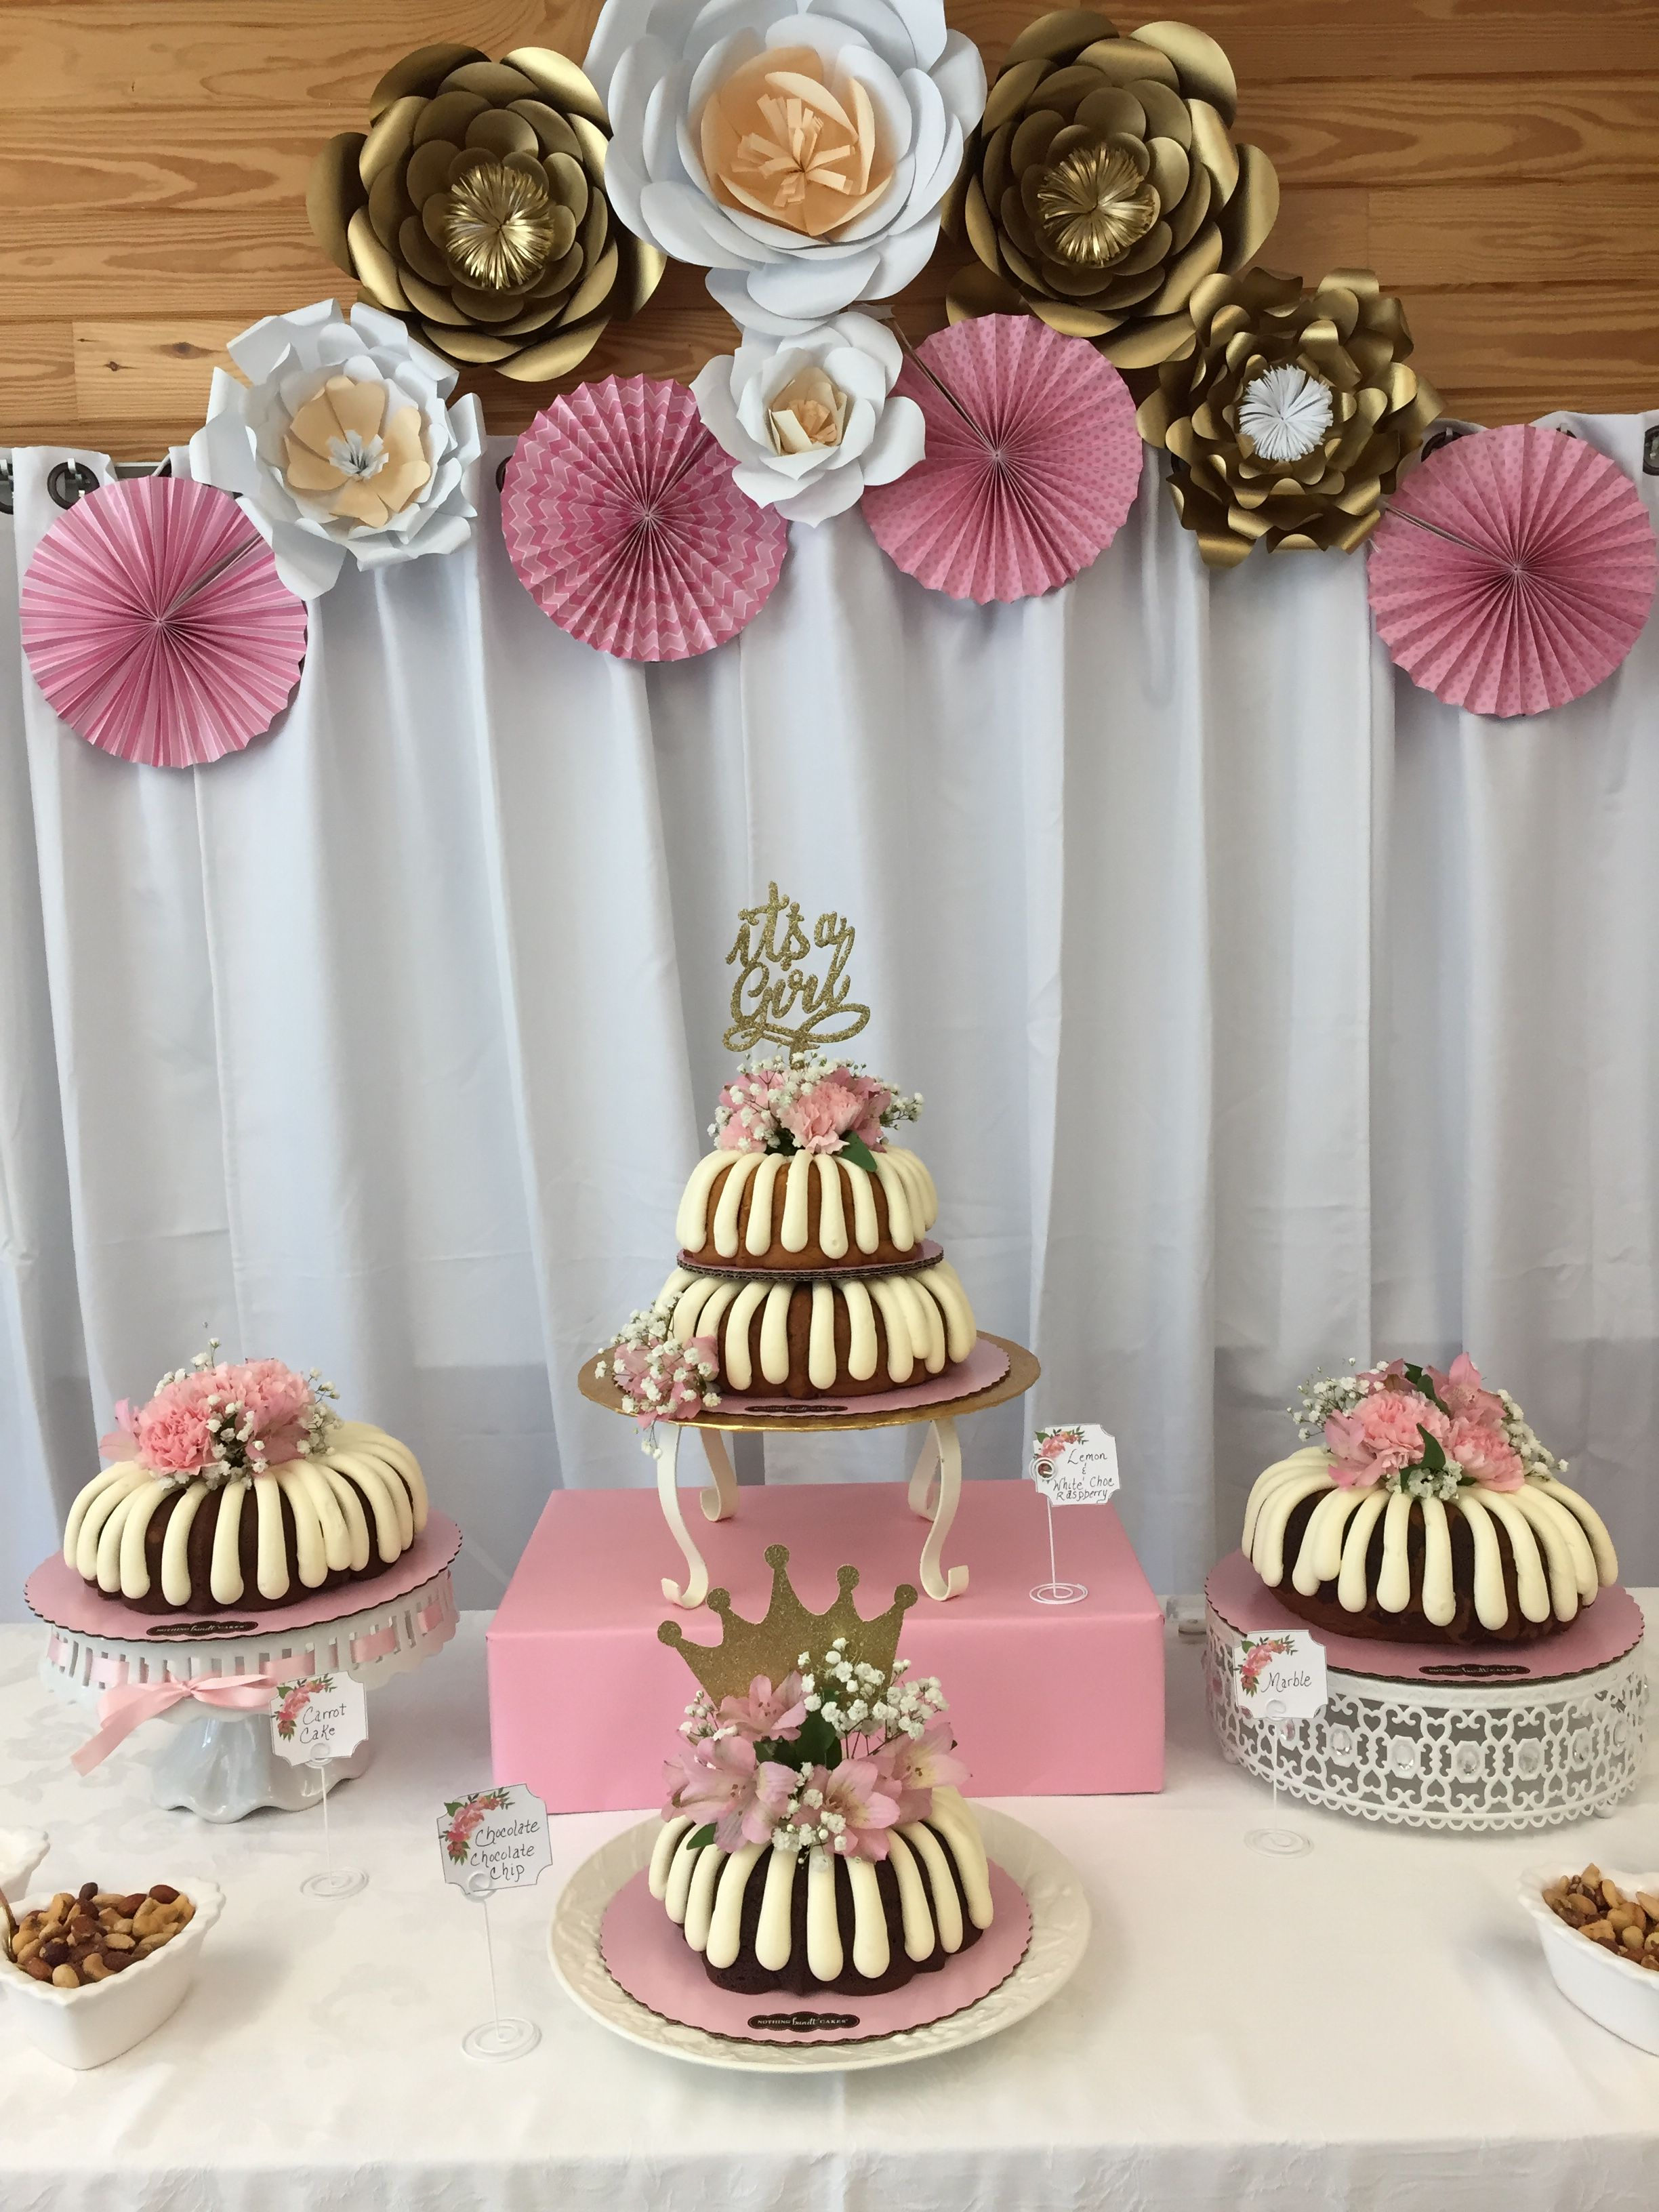 Pretty in pink cakes courtesy of nothing bundt cakes